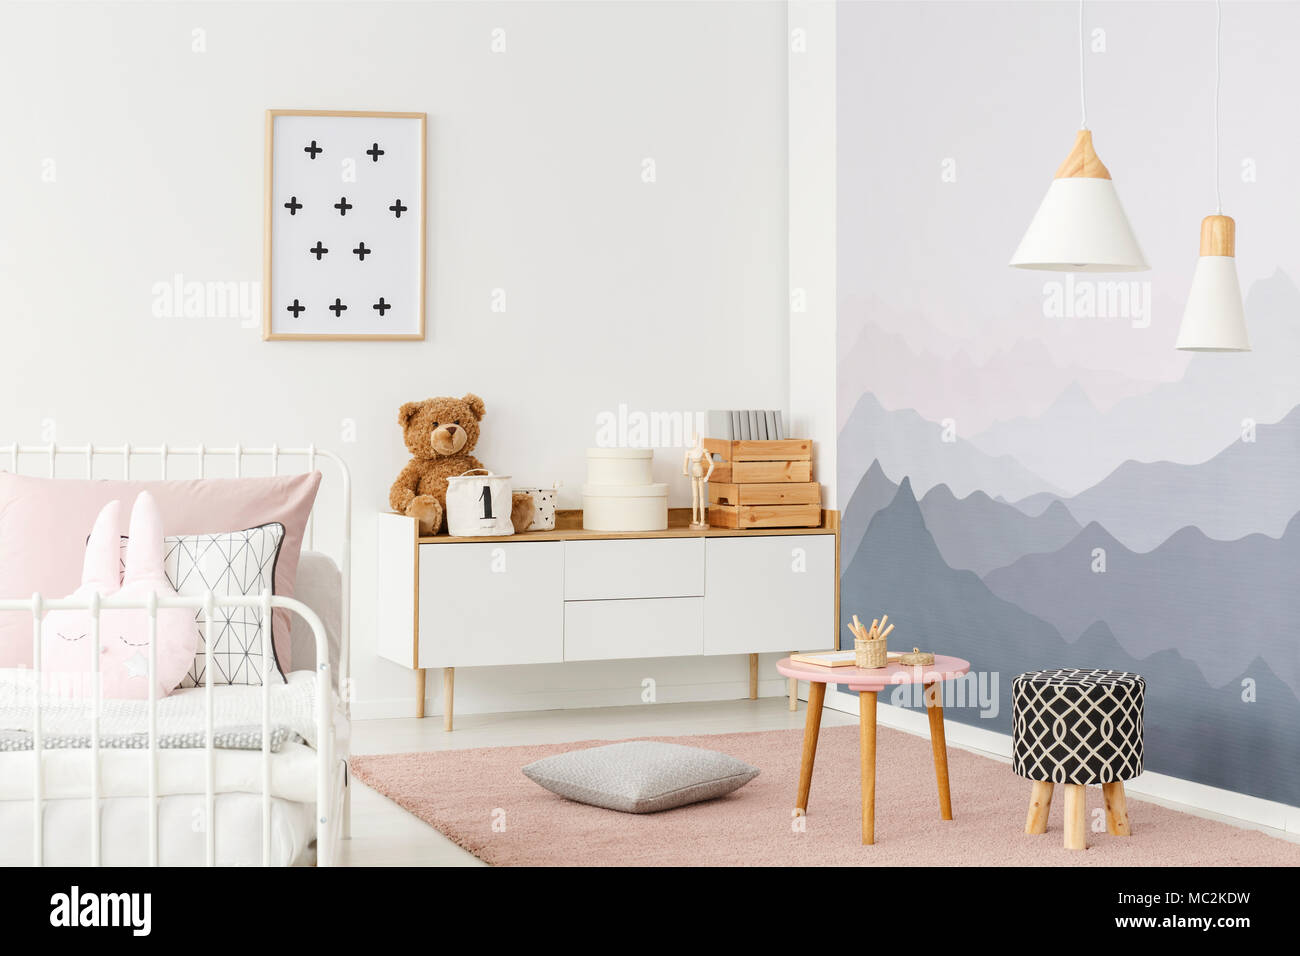 Exceptional White, Wooden Cupboard With A Teddy Bear, Boxes And Decor Standing In Bright  Room